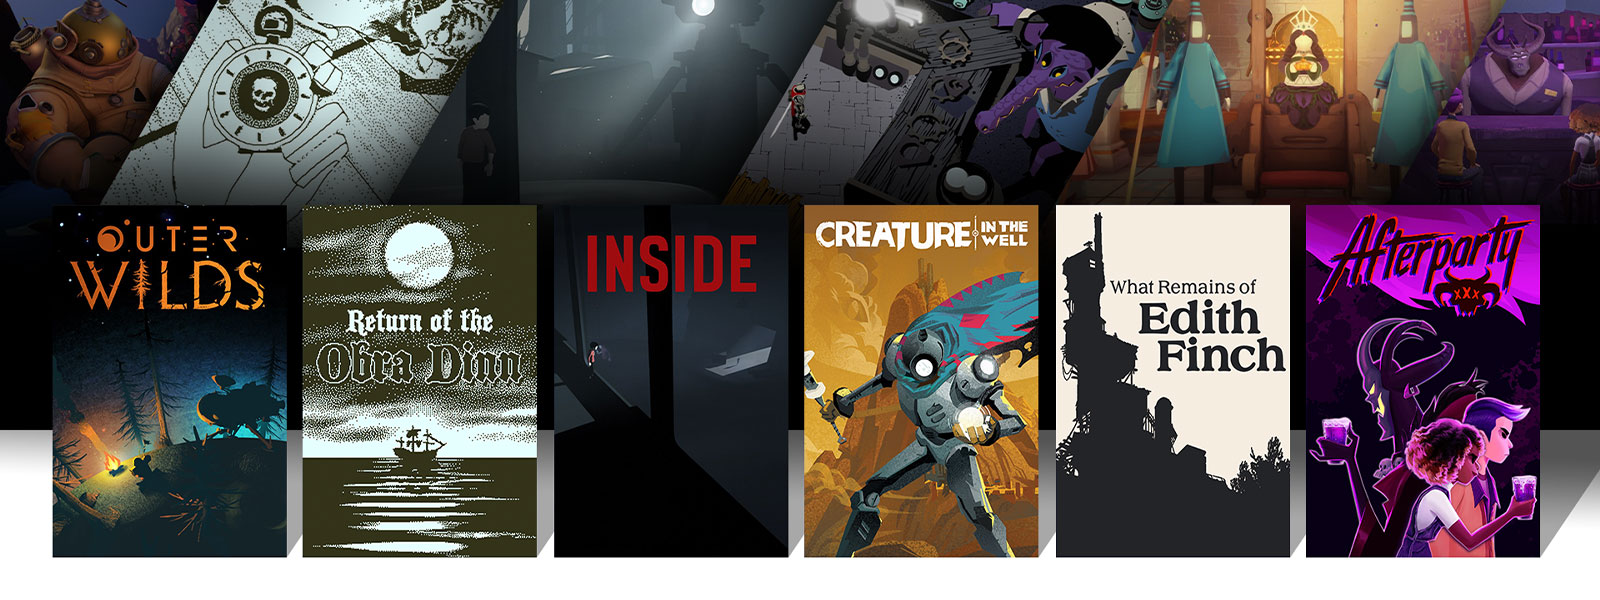 A collage of characters and scenes from Xbox One games on sale. Outer Wilds, Return of the Obra Dinn, Inside, Creature in the Well, What Remains of Edith Finch, and Afterparty.